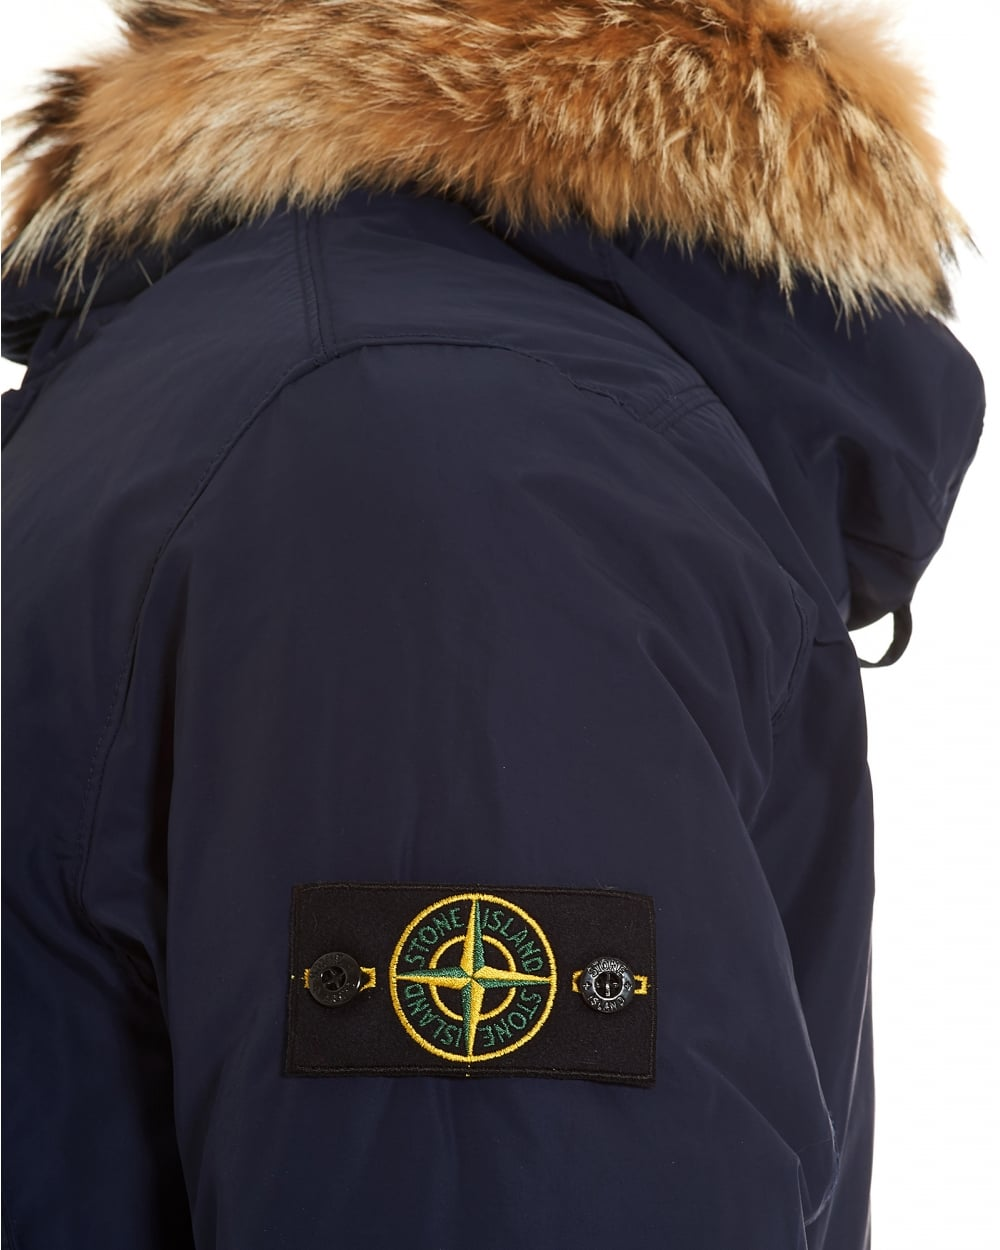 Stone Island Mens Micro Reps Jacket, Navy Blue Down-Filled Fur Parka C